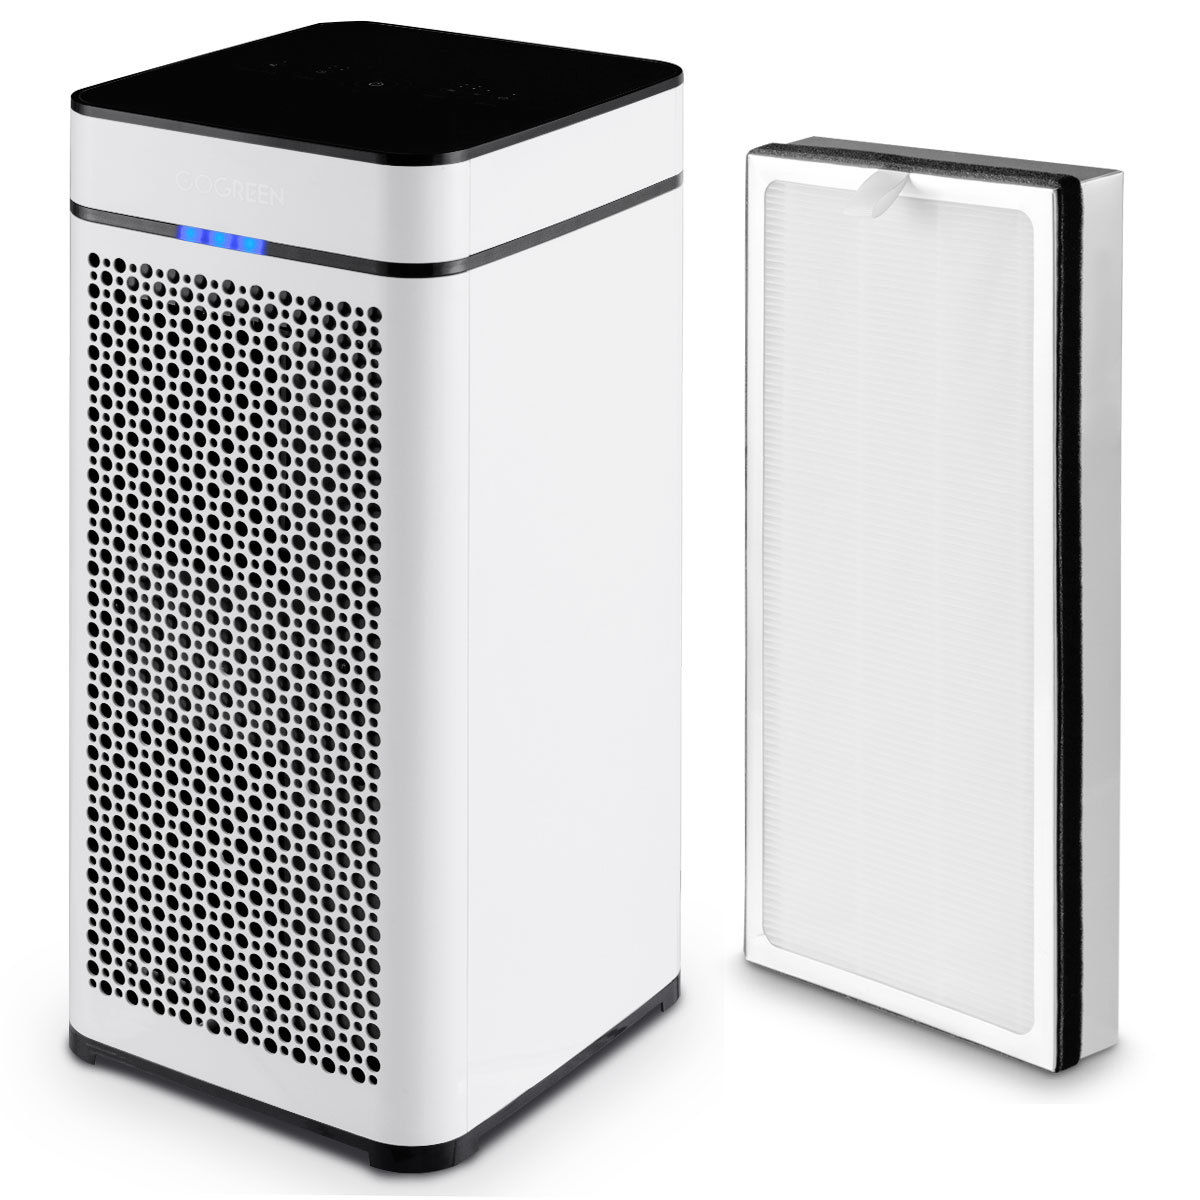 Gymax Air Purifier W/ 2 True HEPA Filter Activated Carbon Filter Air Cleaner 430sp.ft